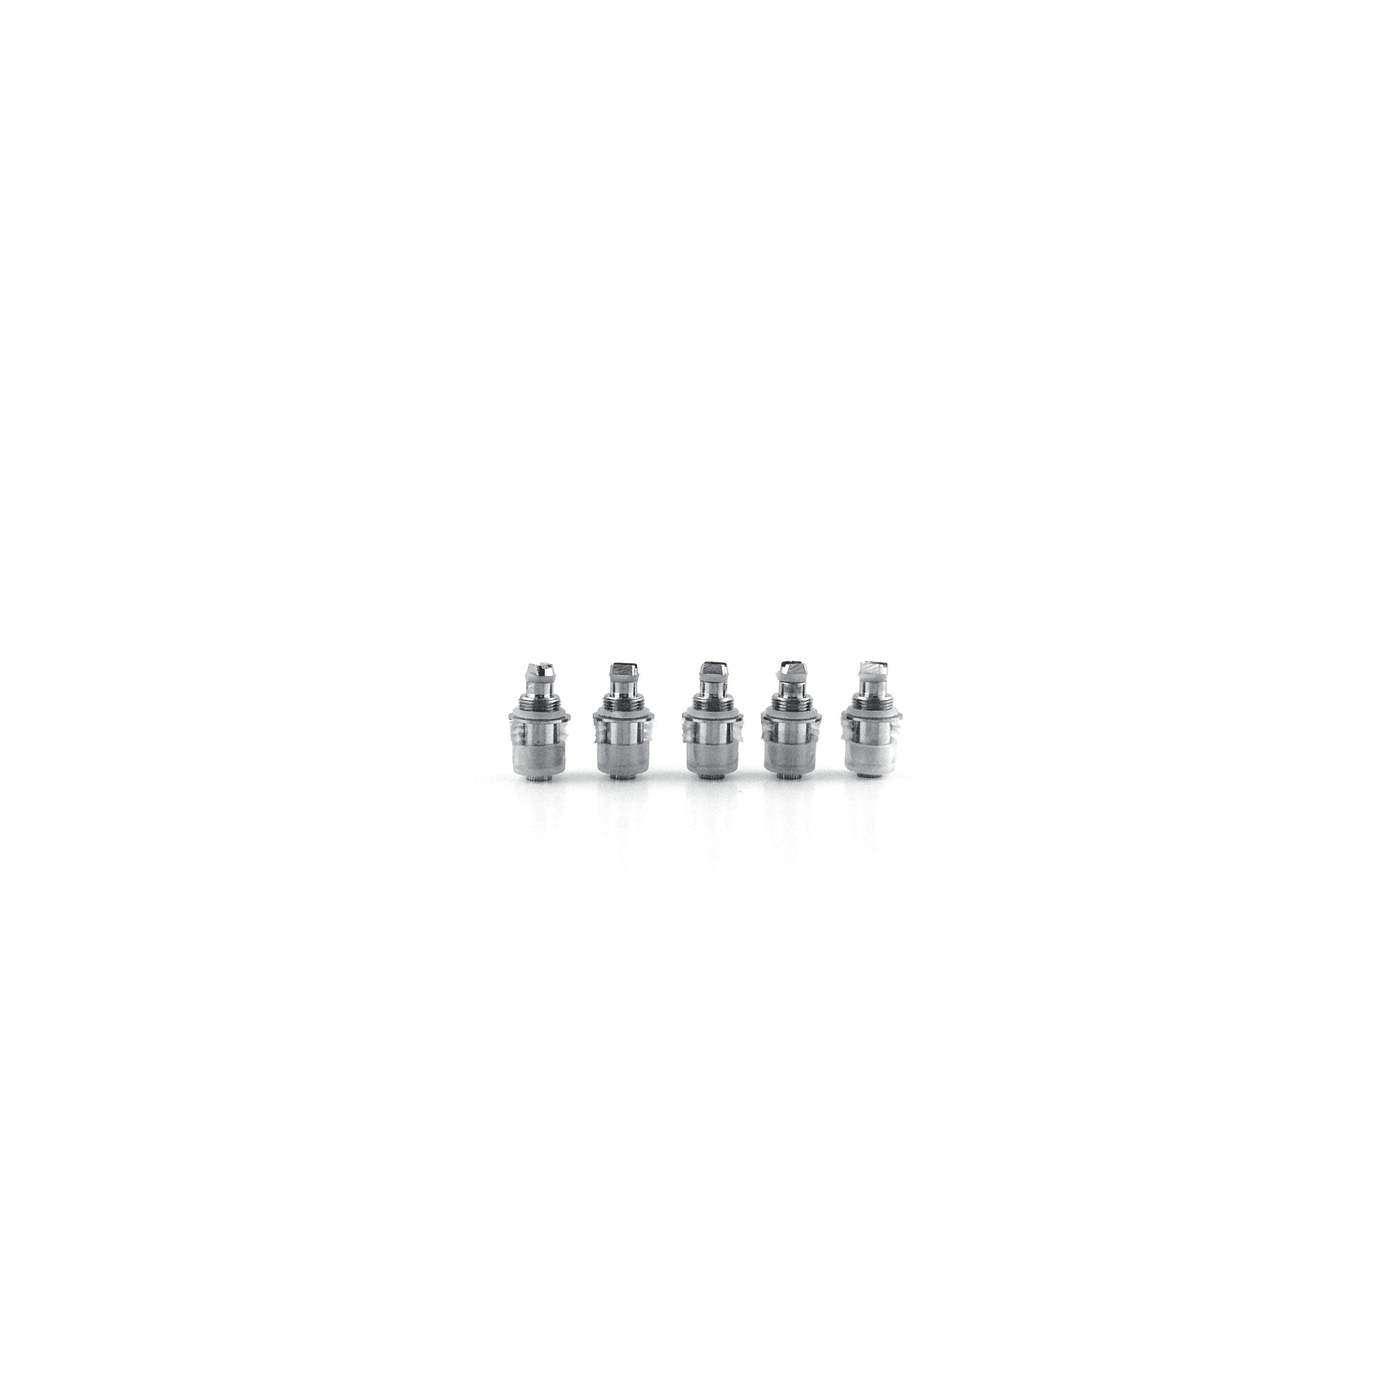 Kanger Protank 3 Replacement Heads 2.0 ohm